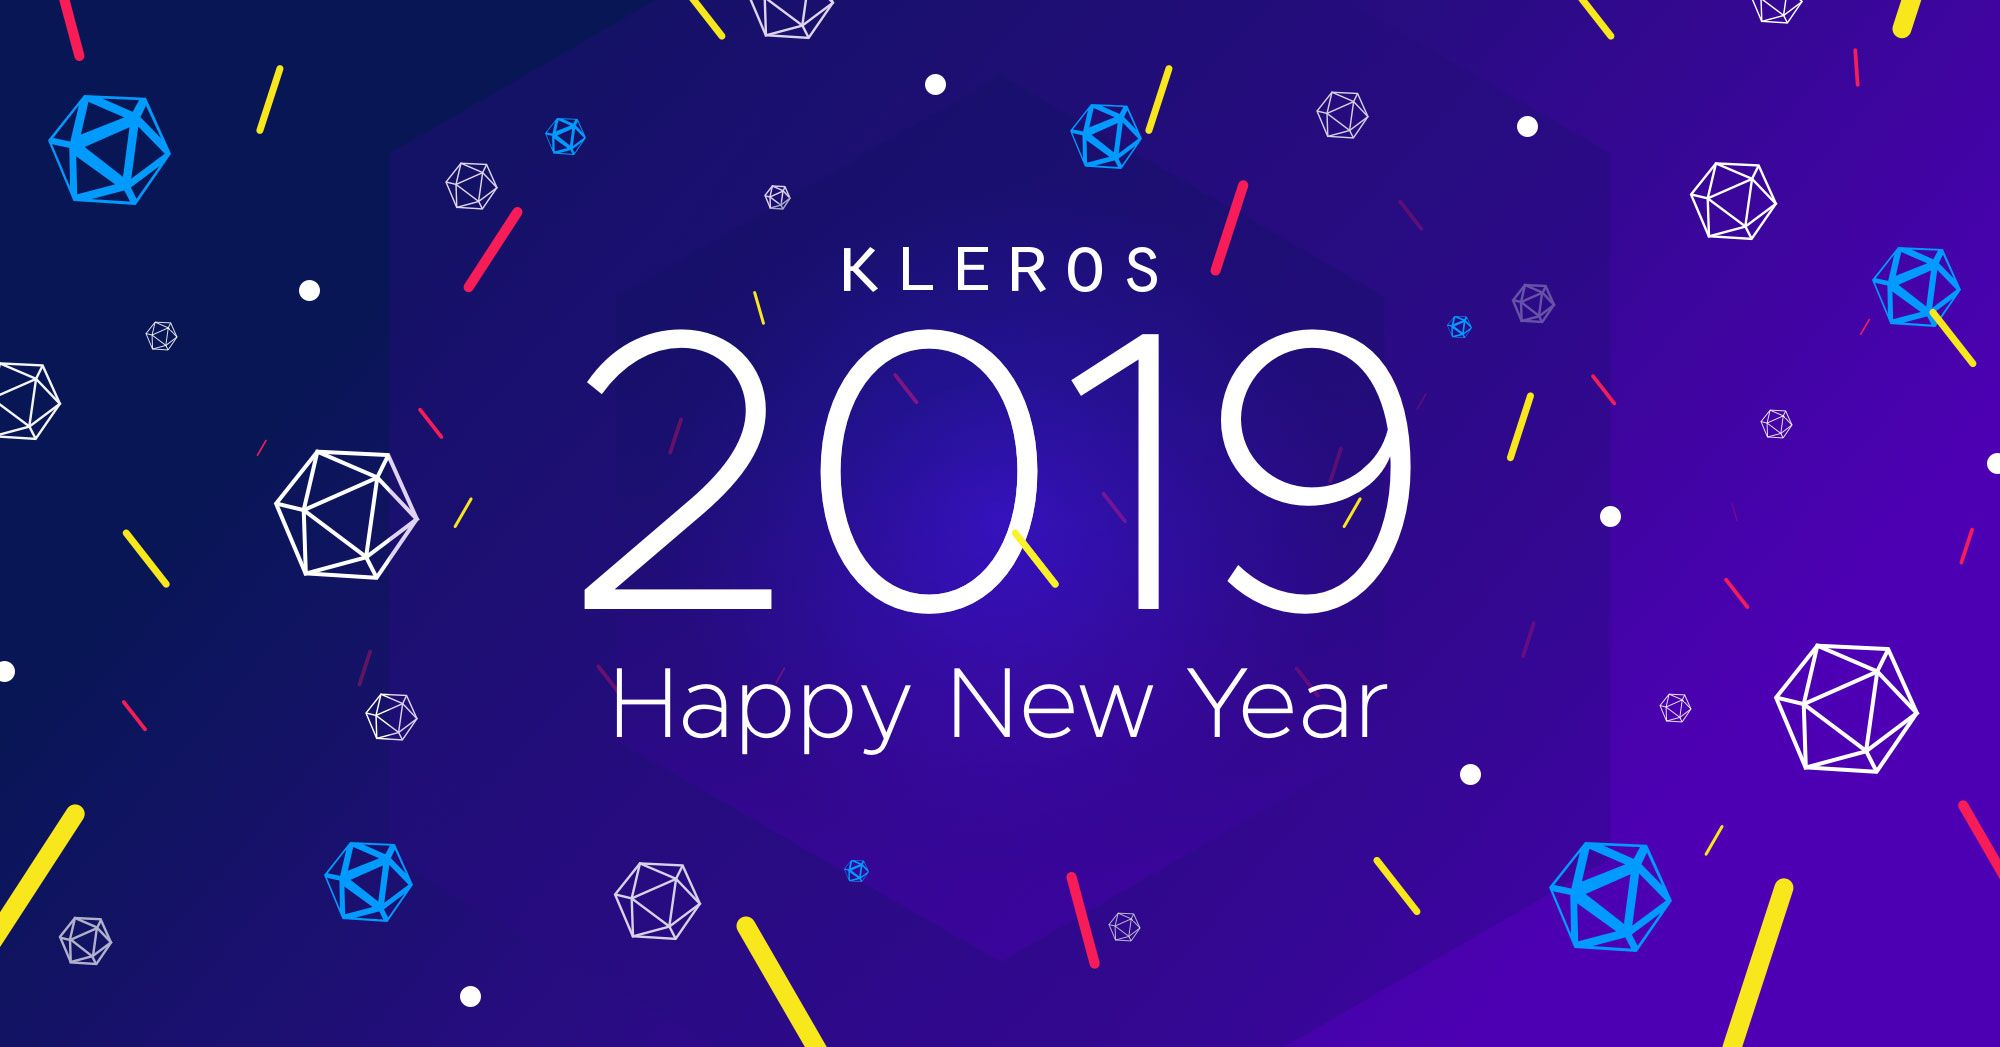 The Kleros End of Year Rundown - What's in Store for 2019